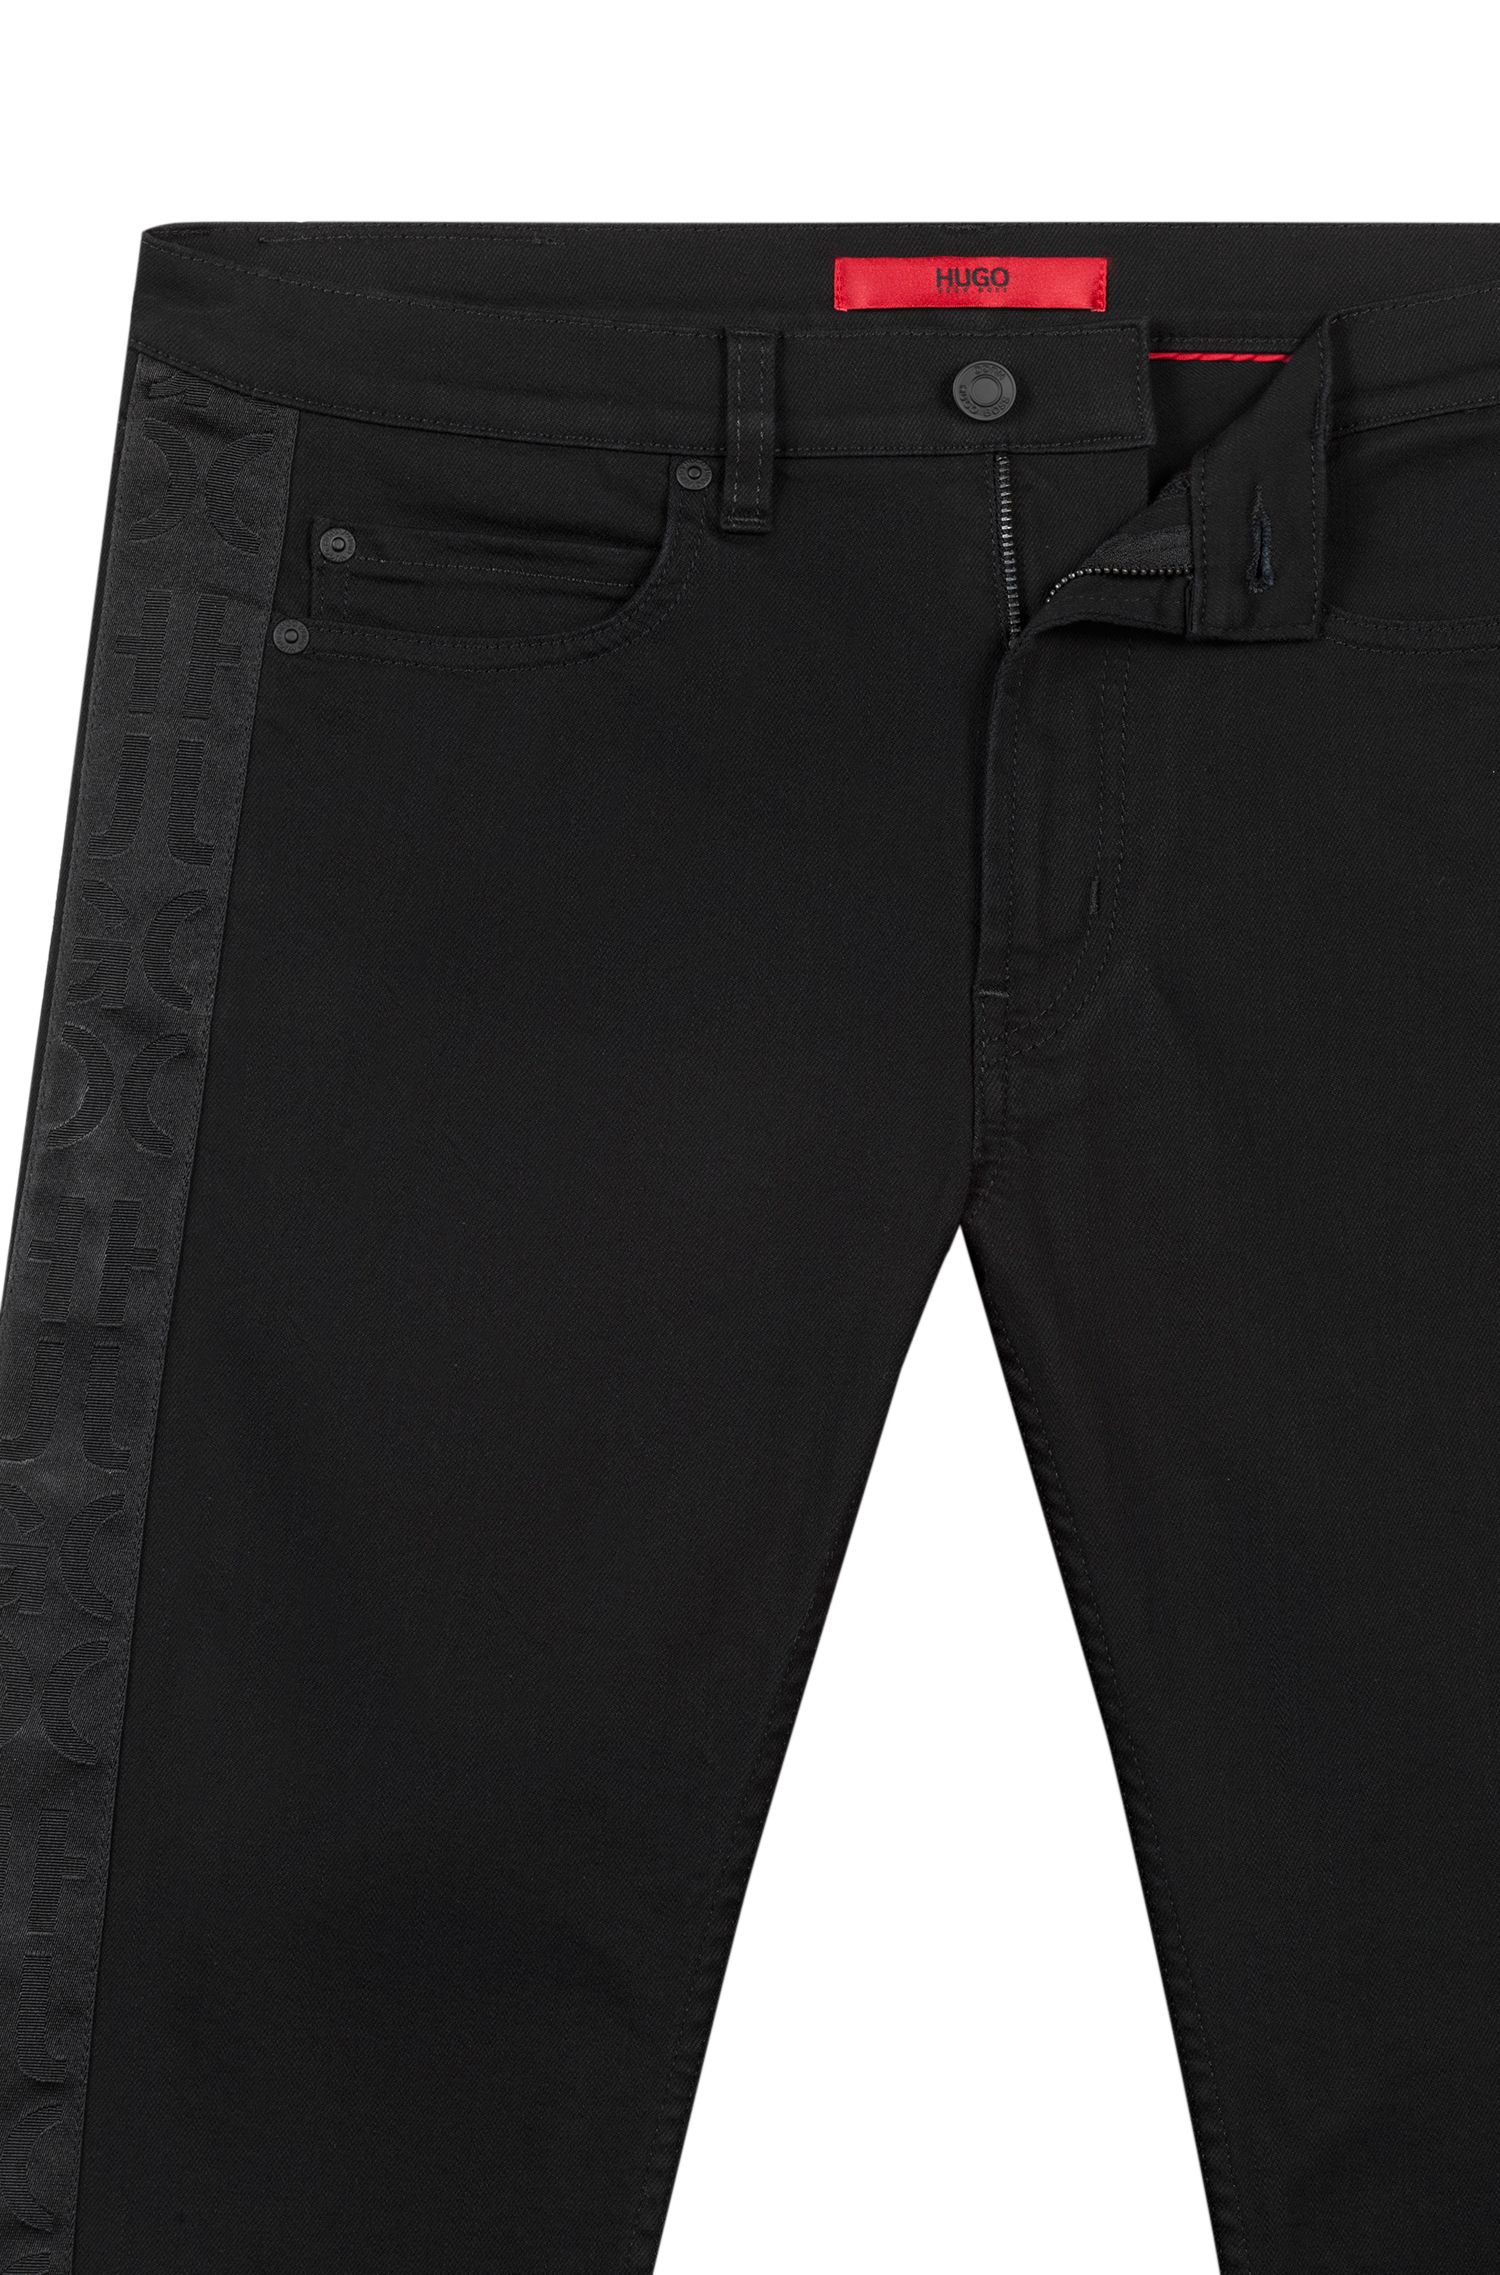 Skinny-fit black jeans with cut-logo tape detail, Black